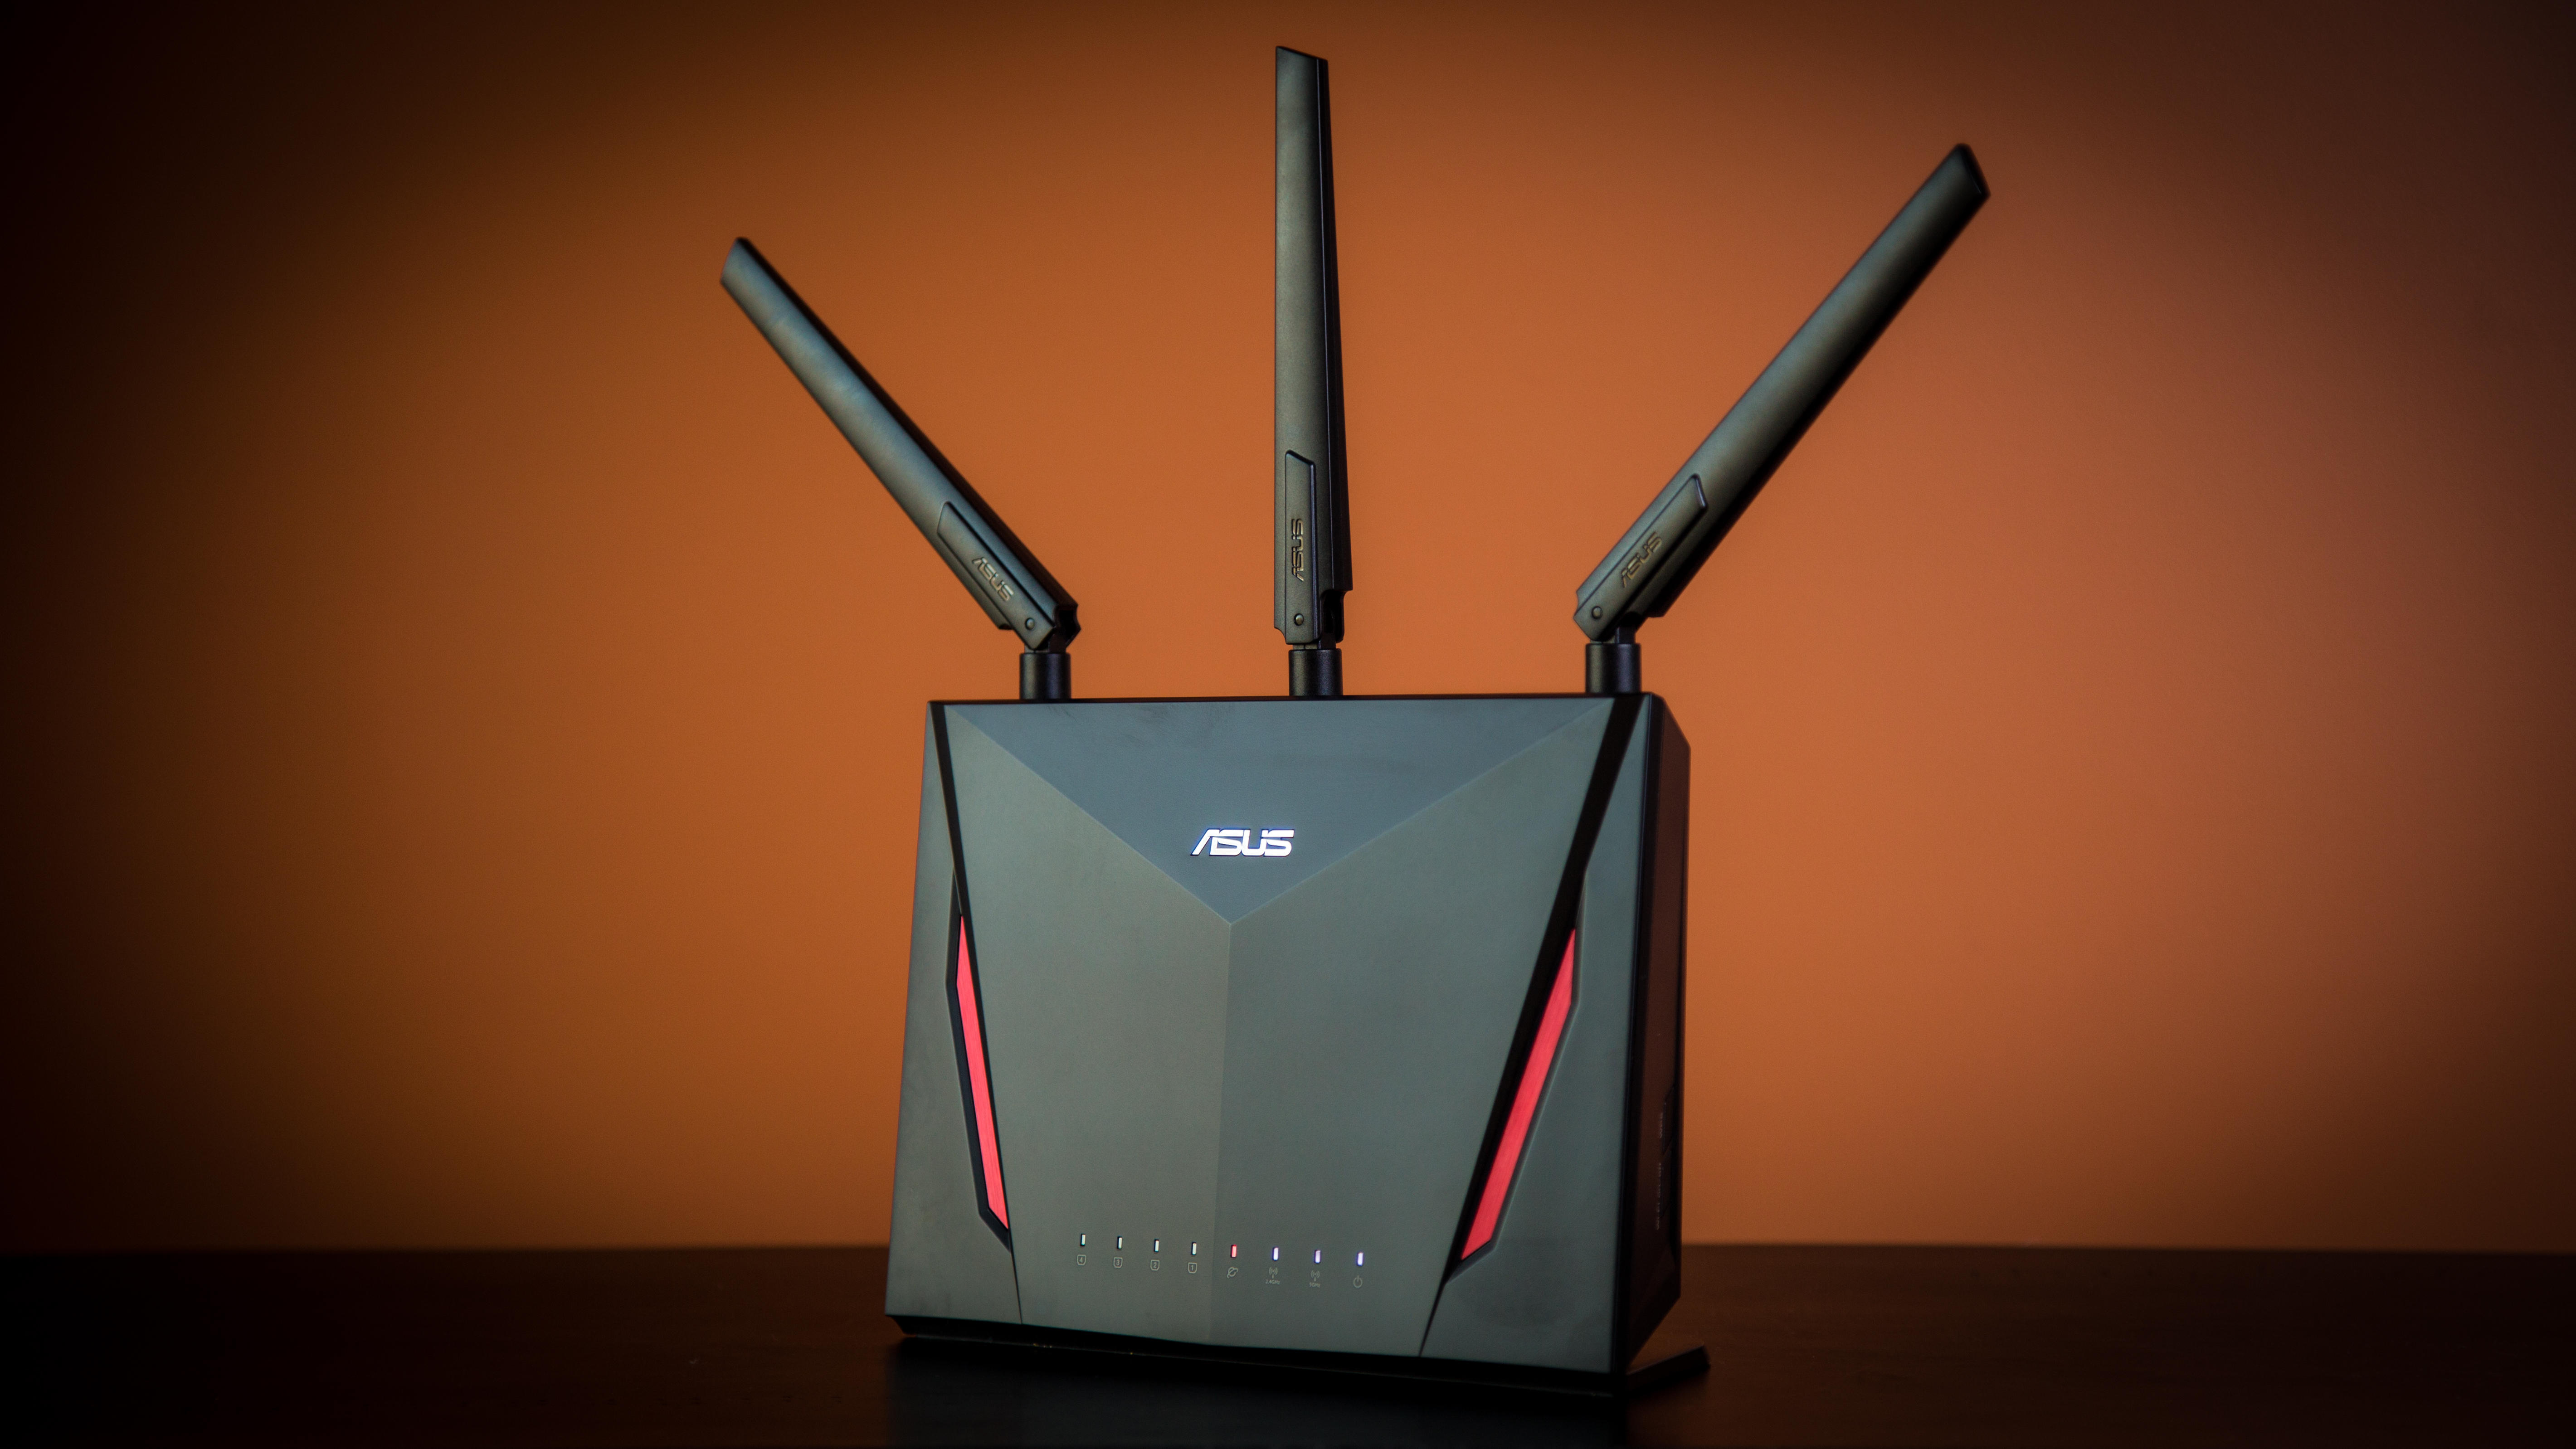 asus-router-7